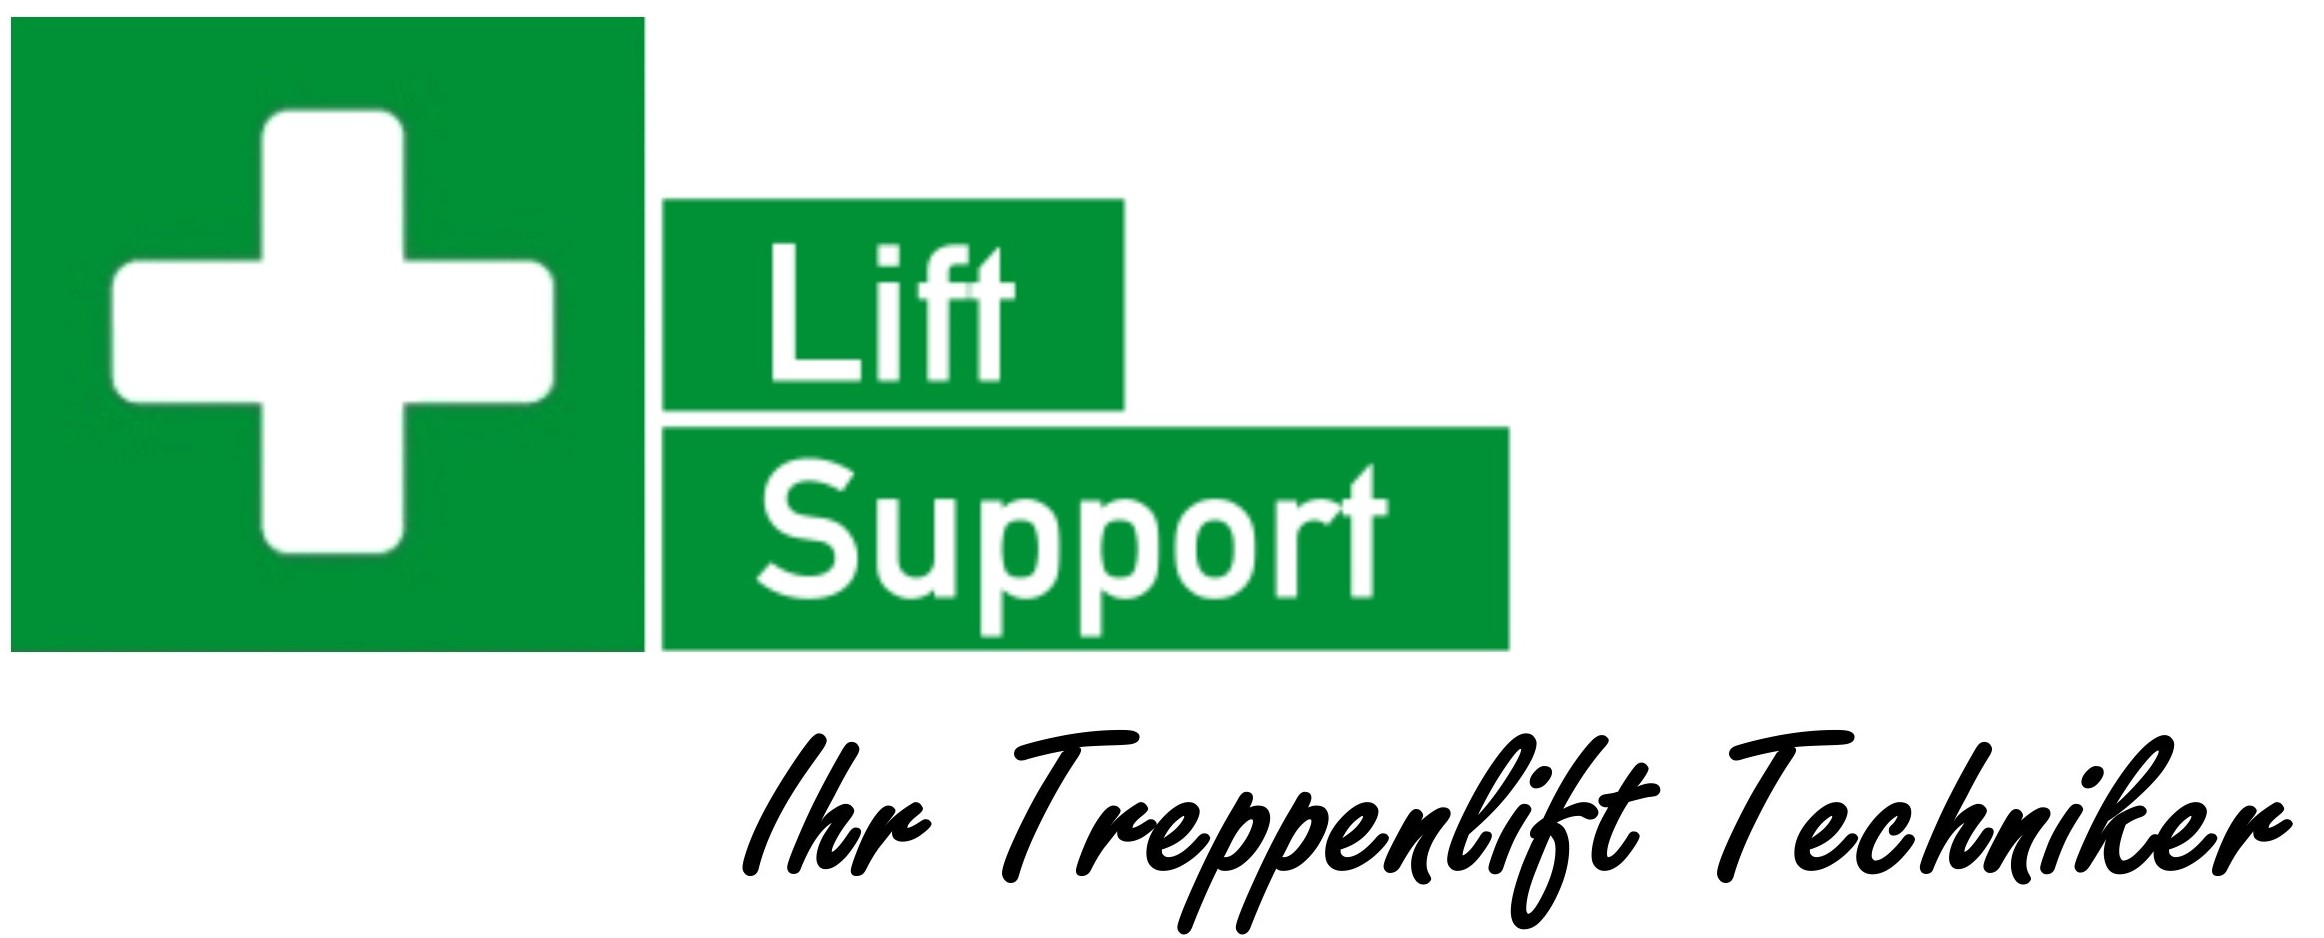 Lift Support - Ihr Treppenlift Techniker